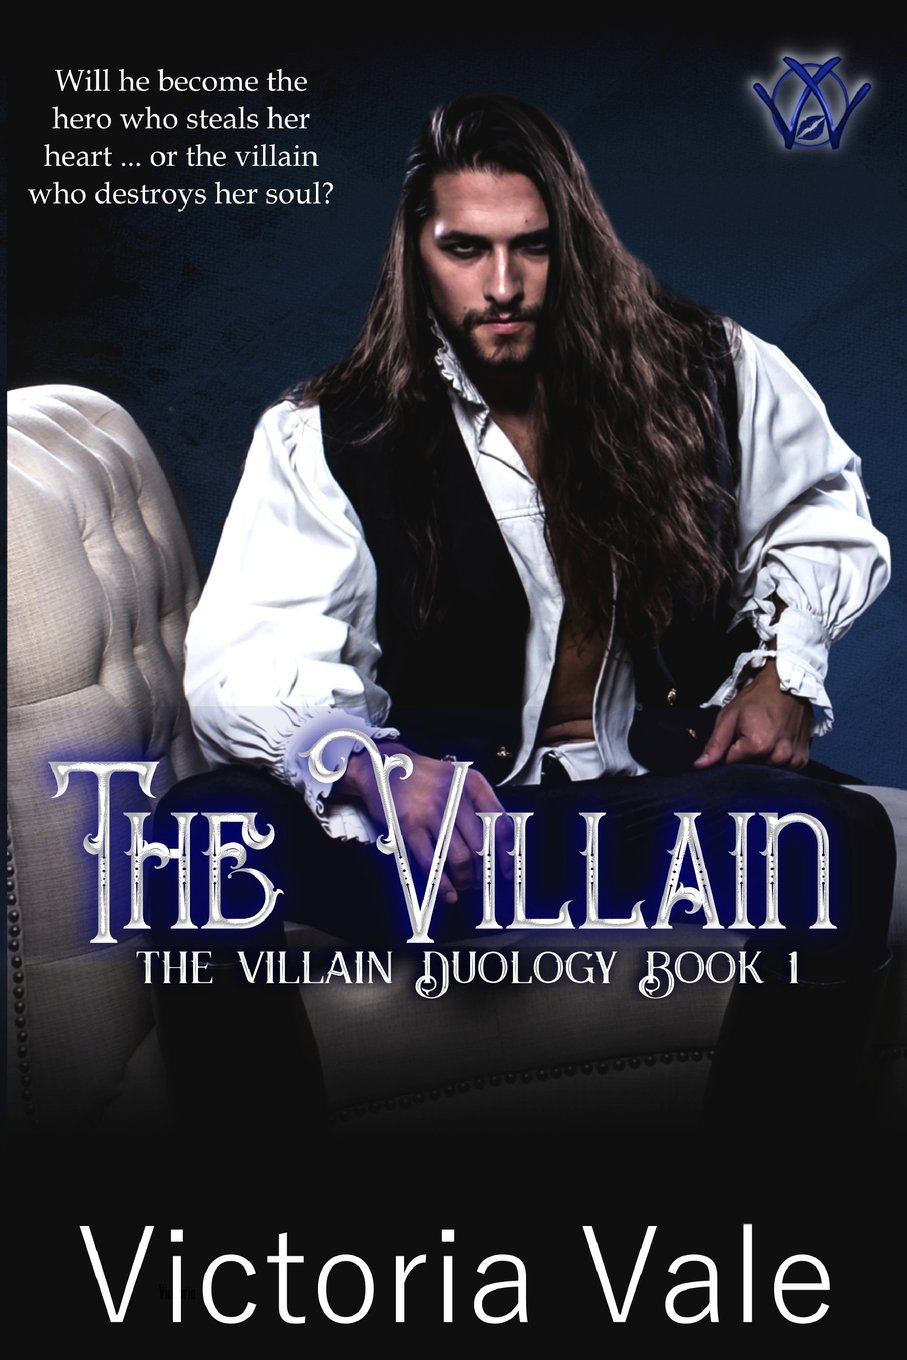 The Villain by Victoria Vale